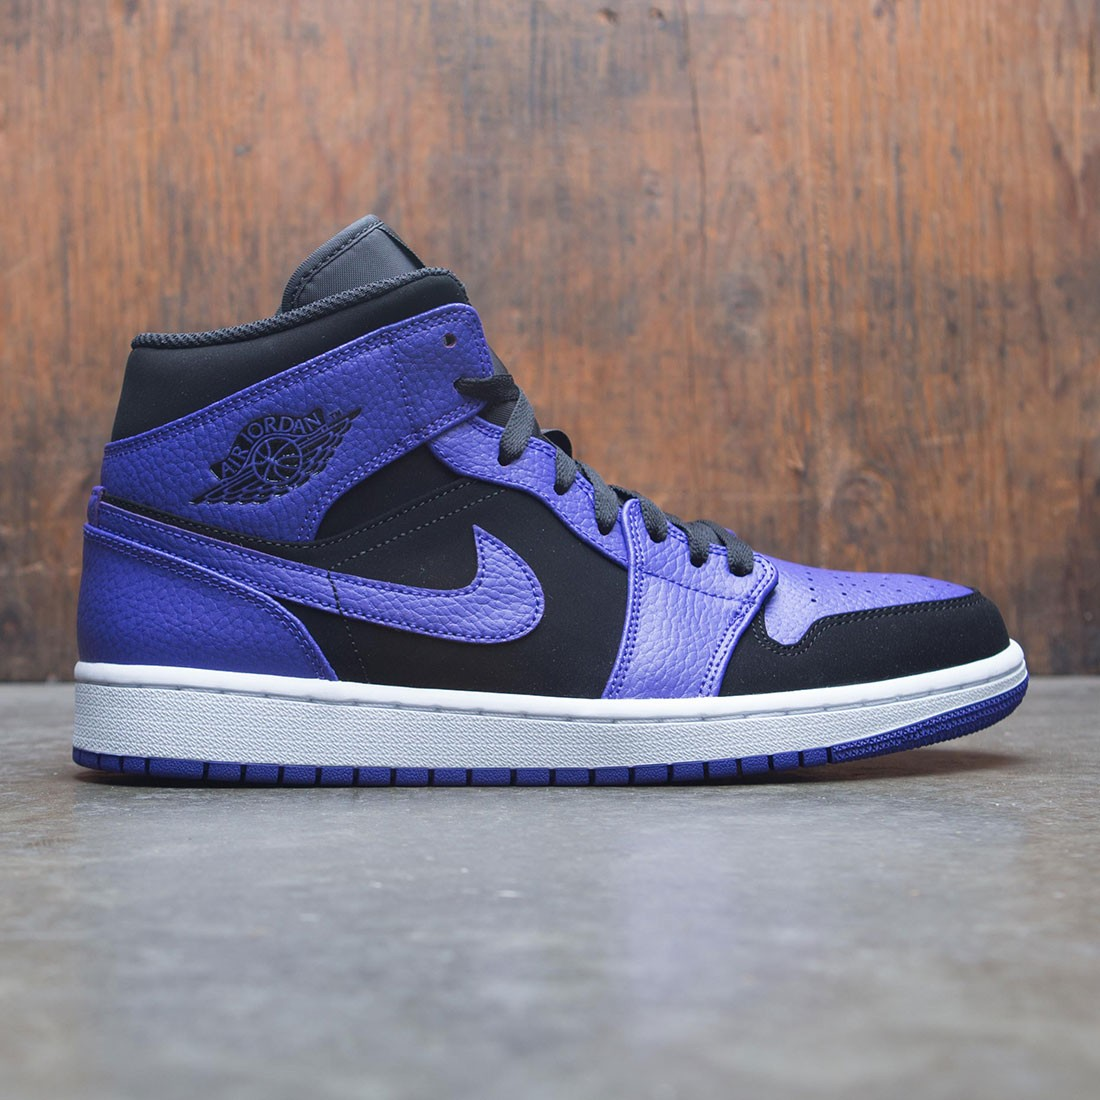 543eb17a324a55 jordan men air jordan 1 mid black dark concord white